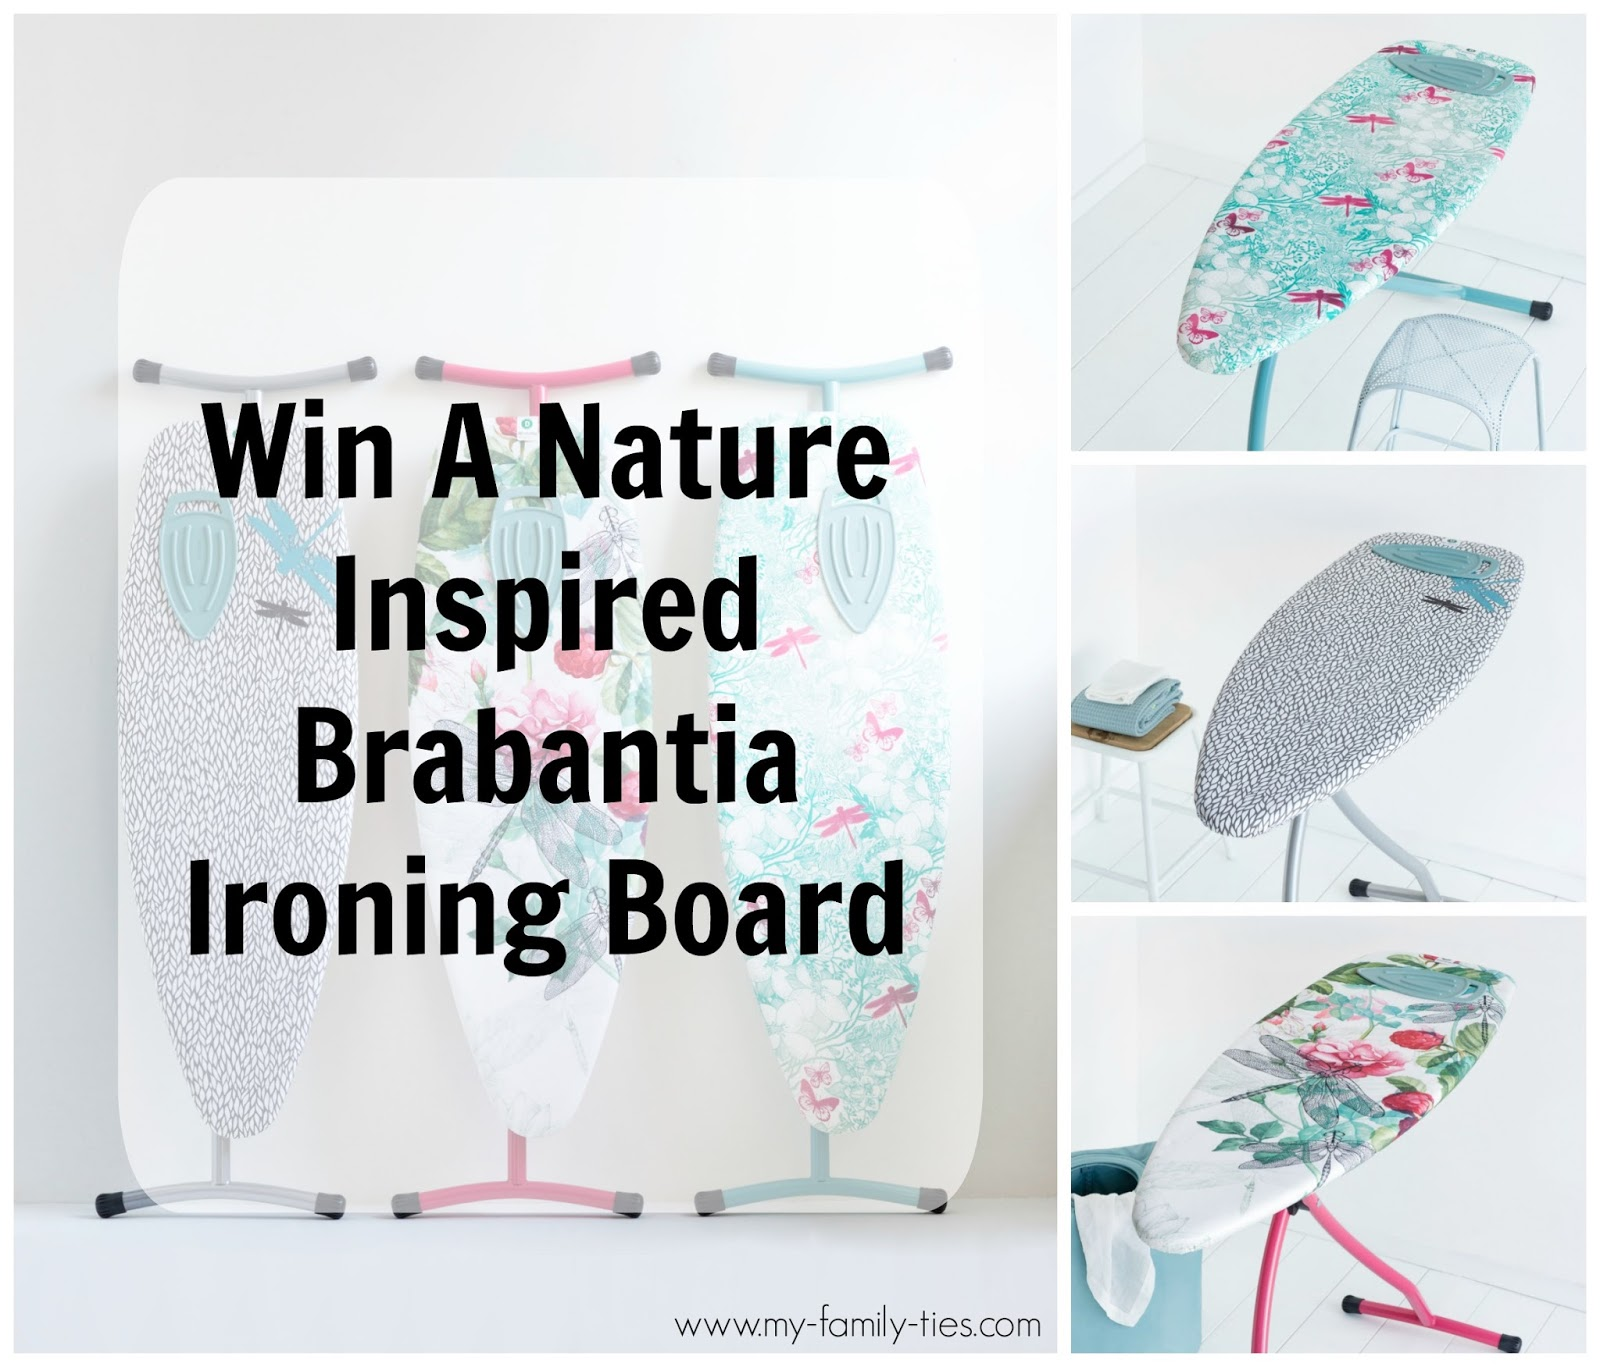 Giveaway To Win a Nature Inspired Brabantia Ironing BoardWith My Family Ties Blog www.my-family-ties.com